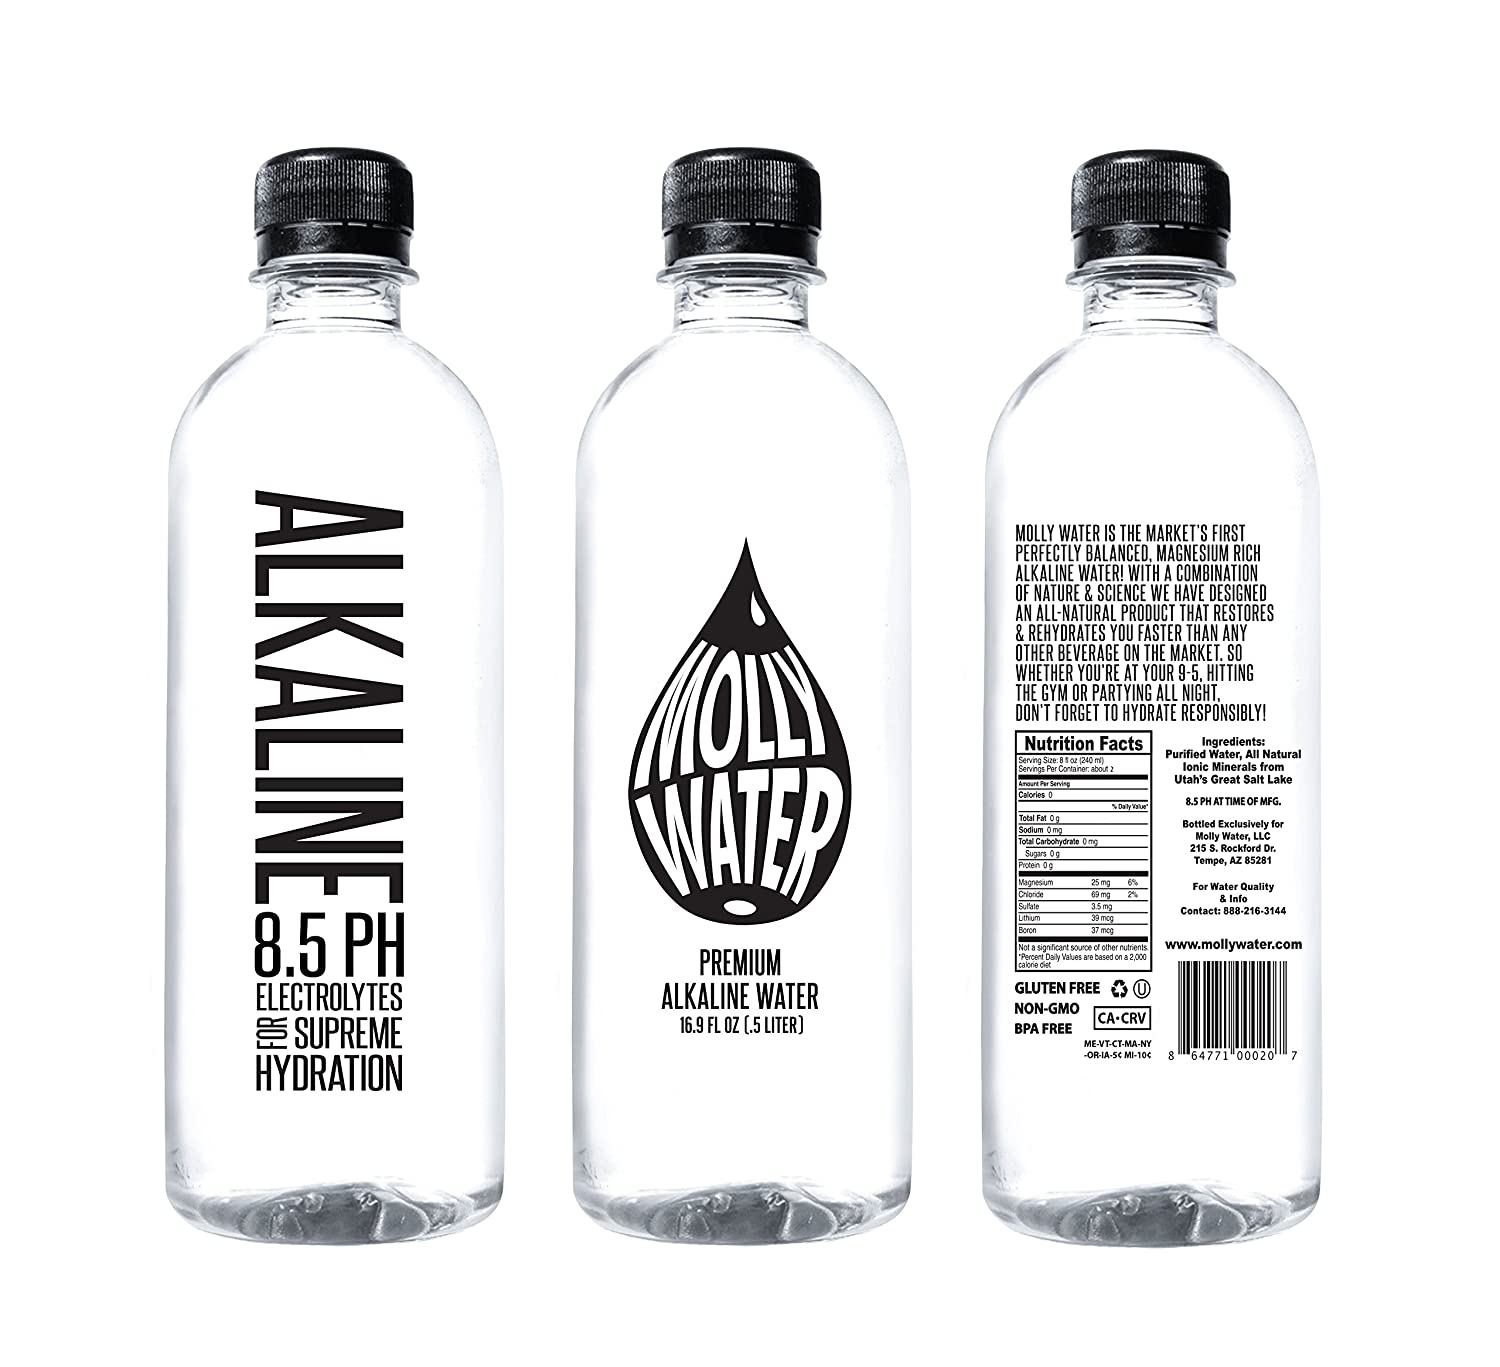 Amazoncom Molly Water Premium Alkaline Water With Magnesium And - Alkaline water bottle